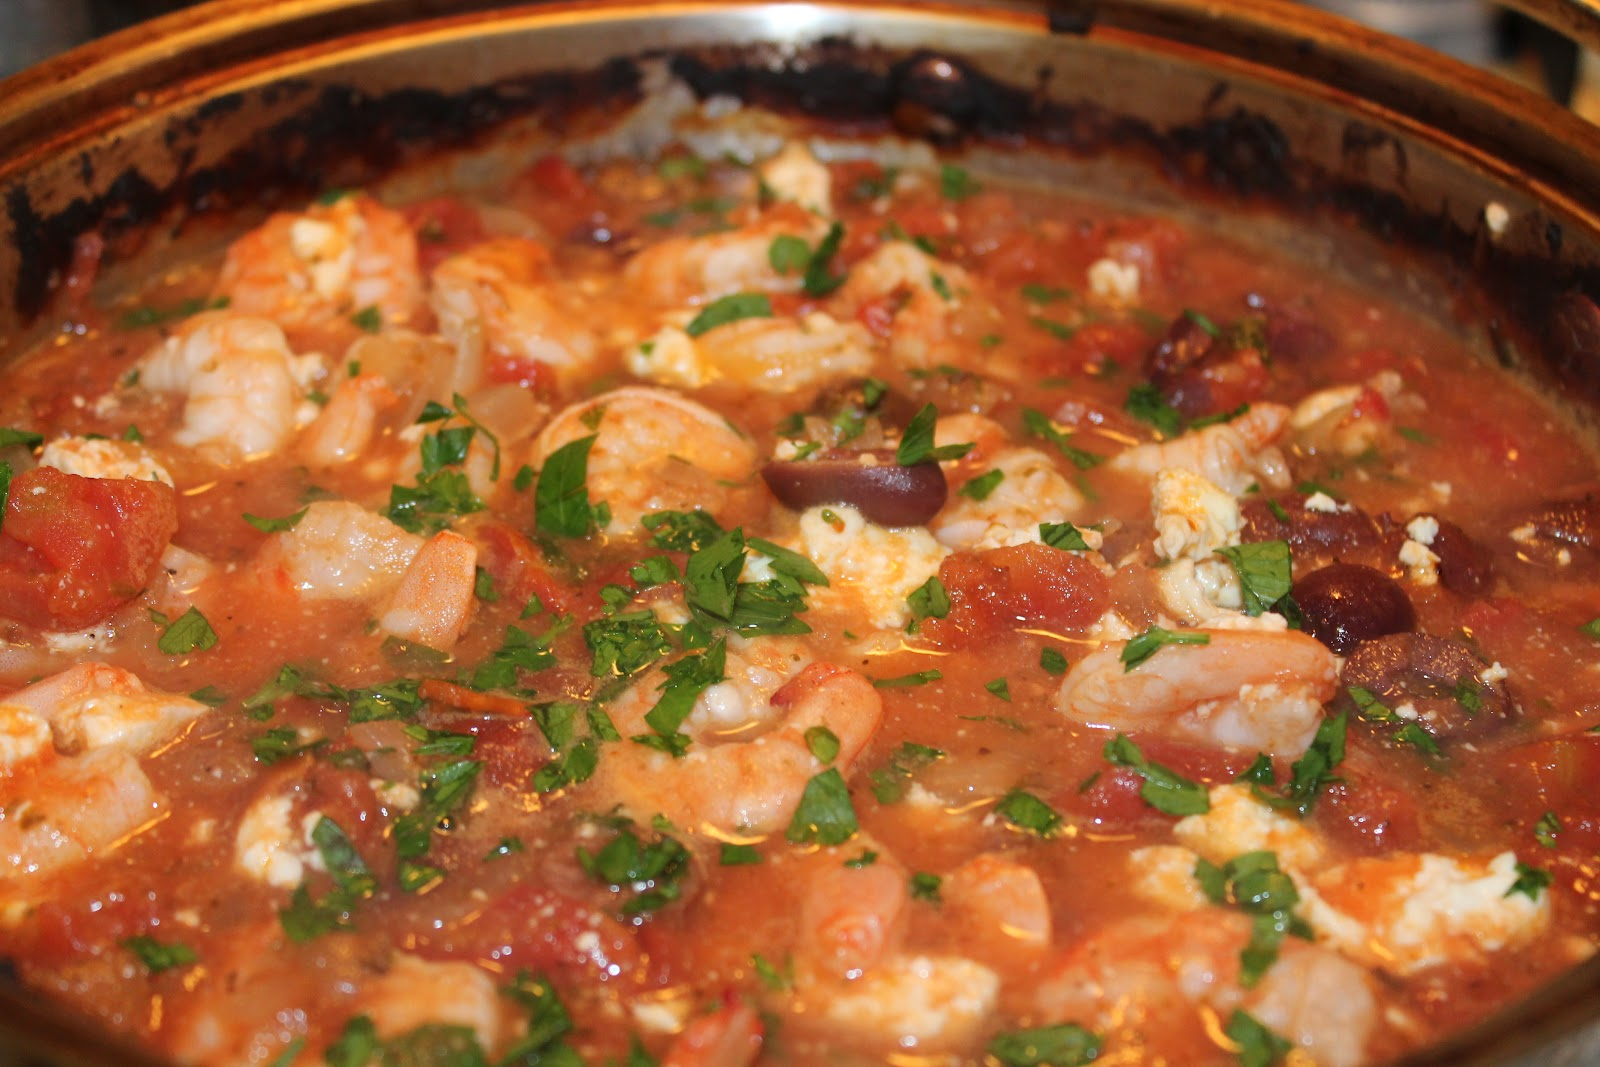 Savory Moments: Baked shrimp with tomatoes and feta